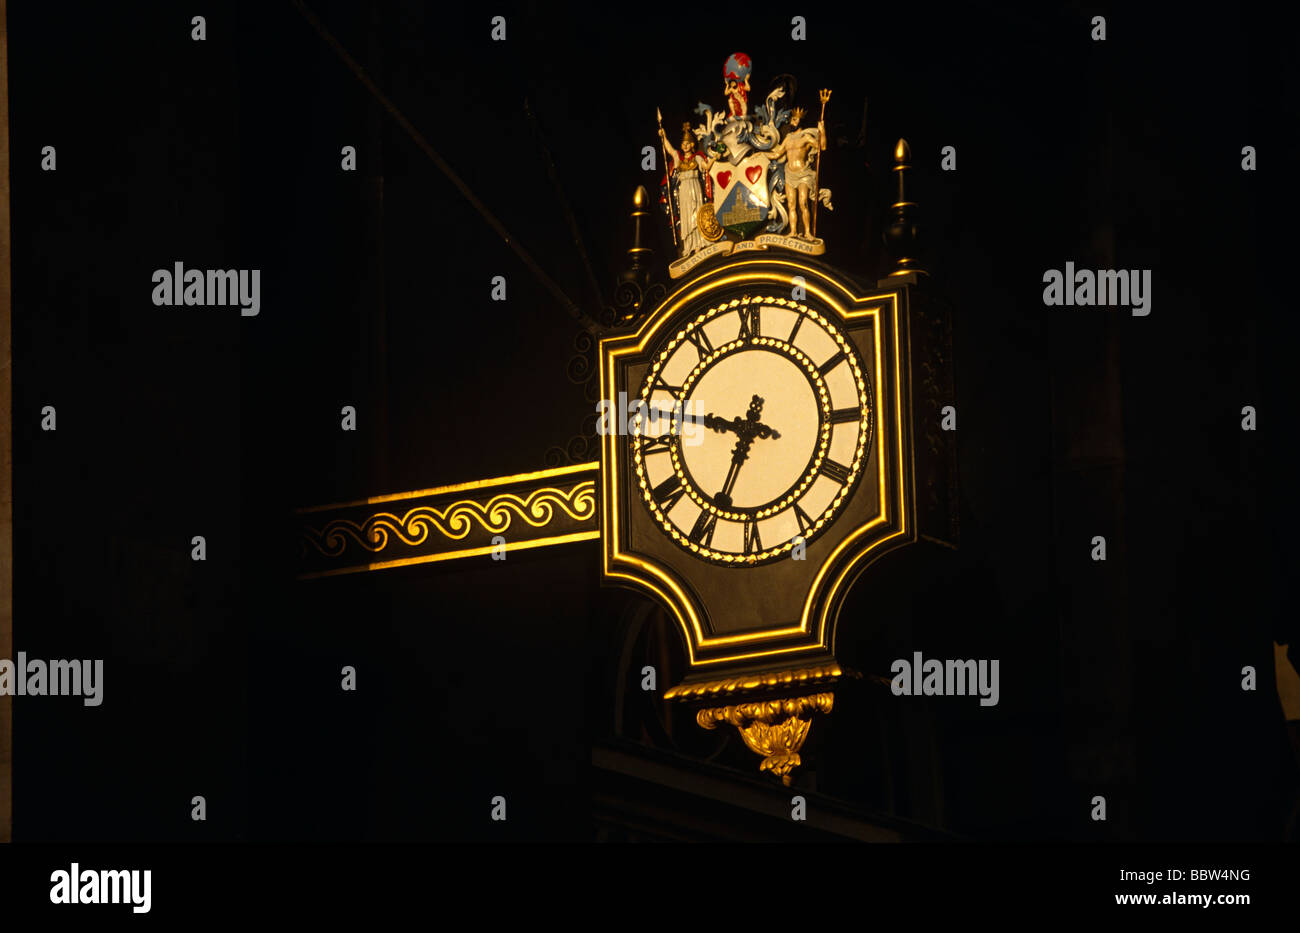 Early sun on guilded clock of 3rd Royal Exchange (1842) by Sir William Tite - Stock Image